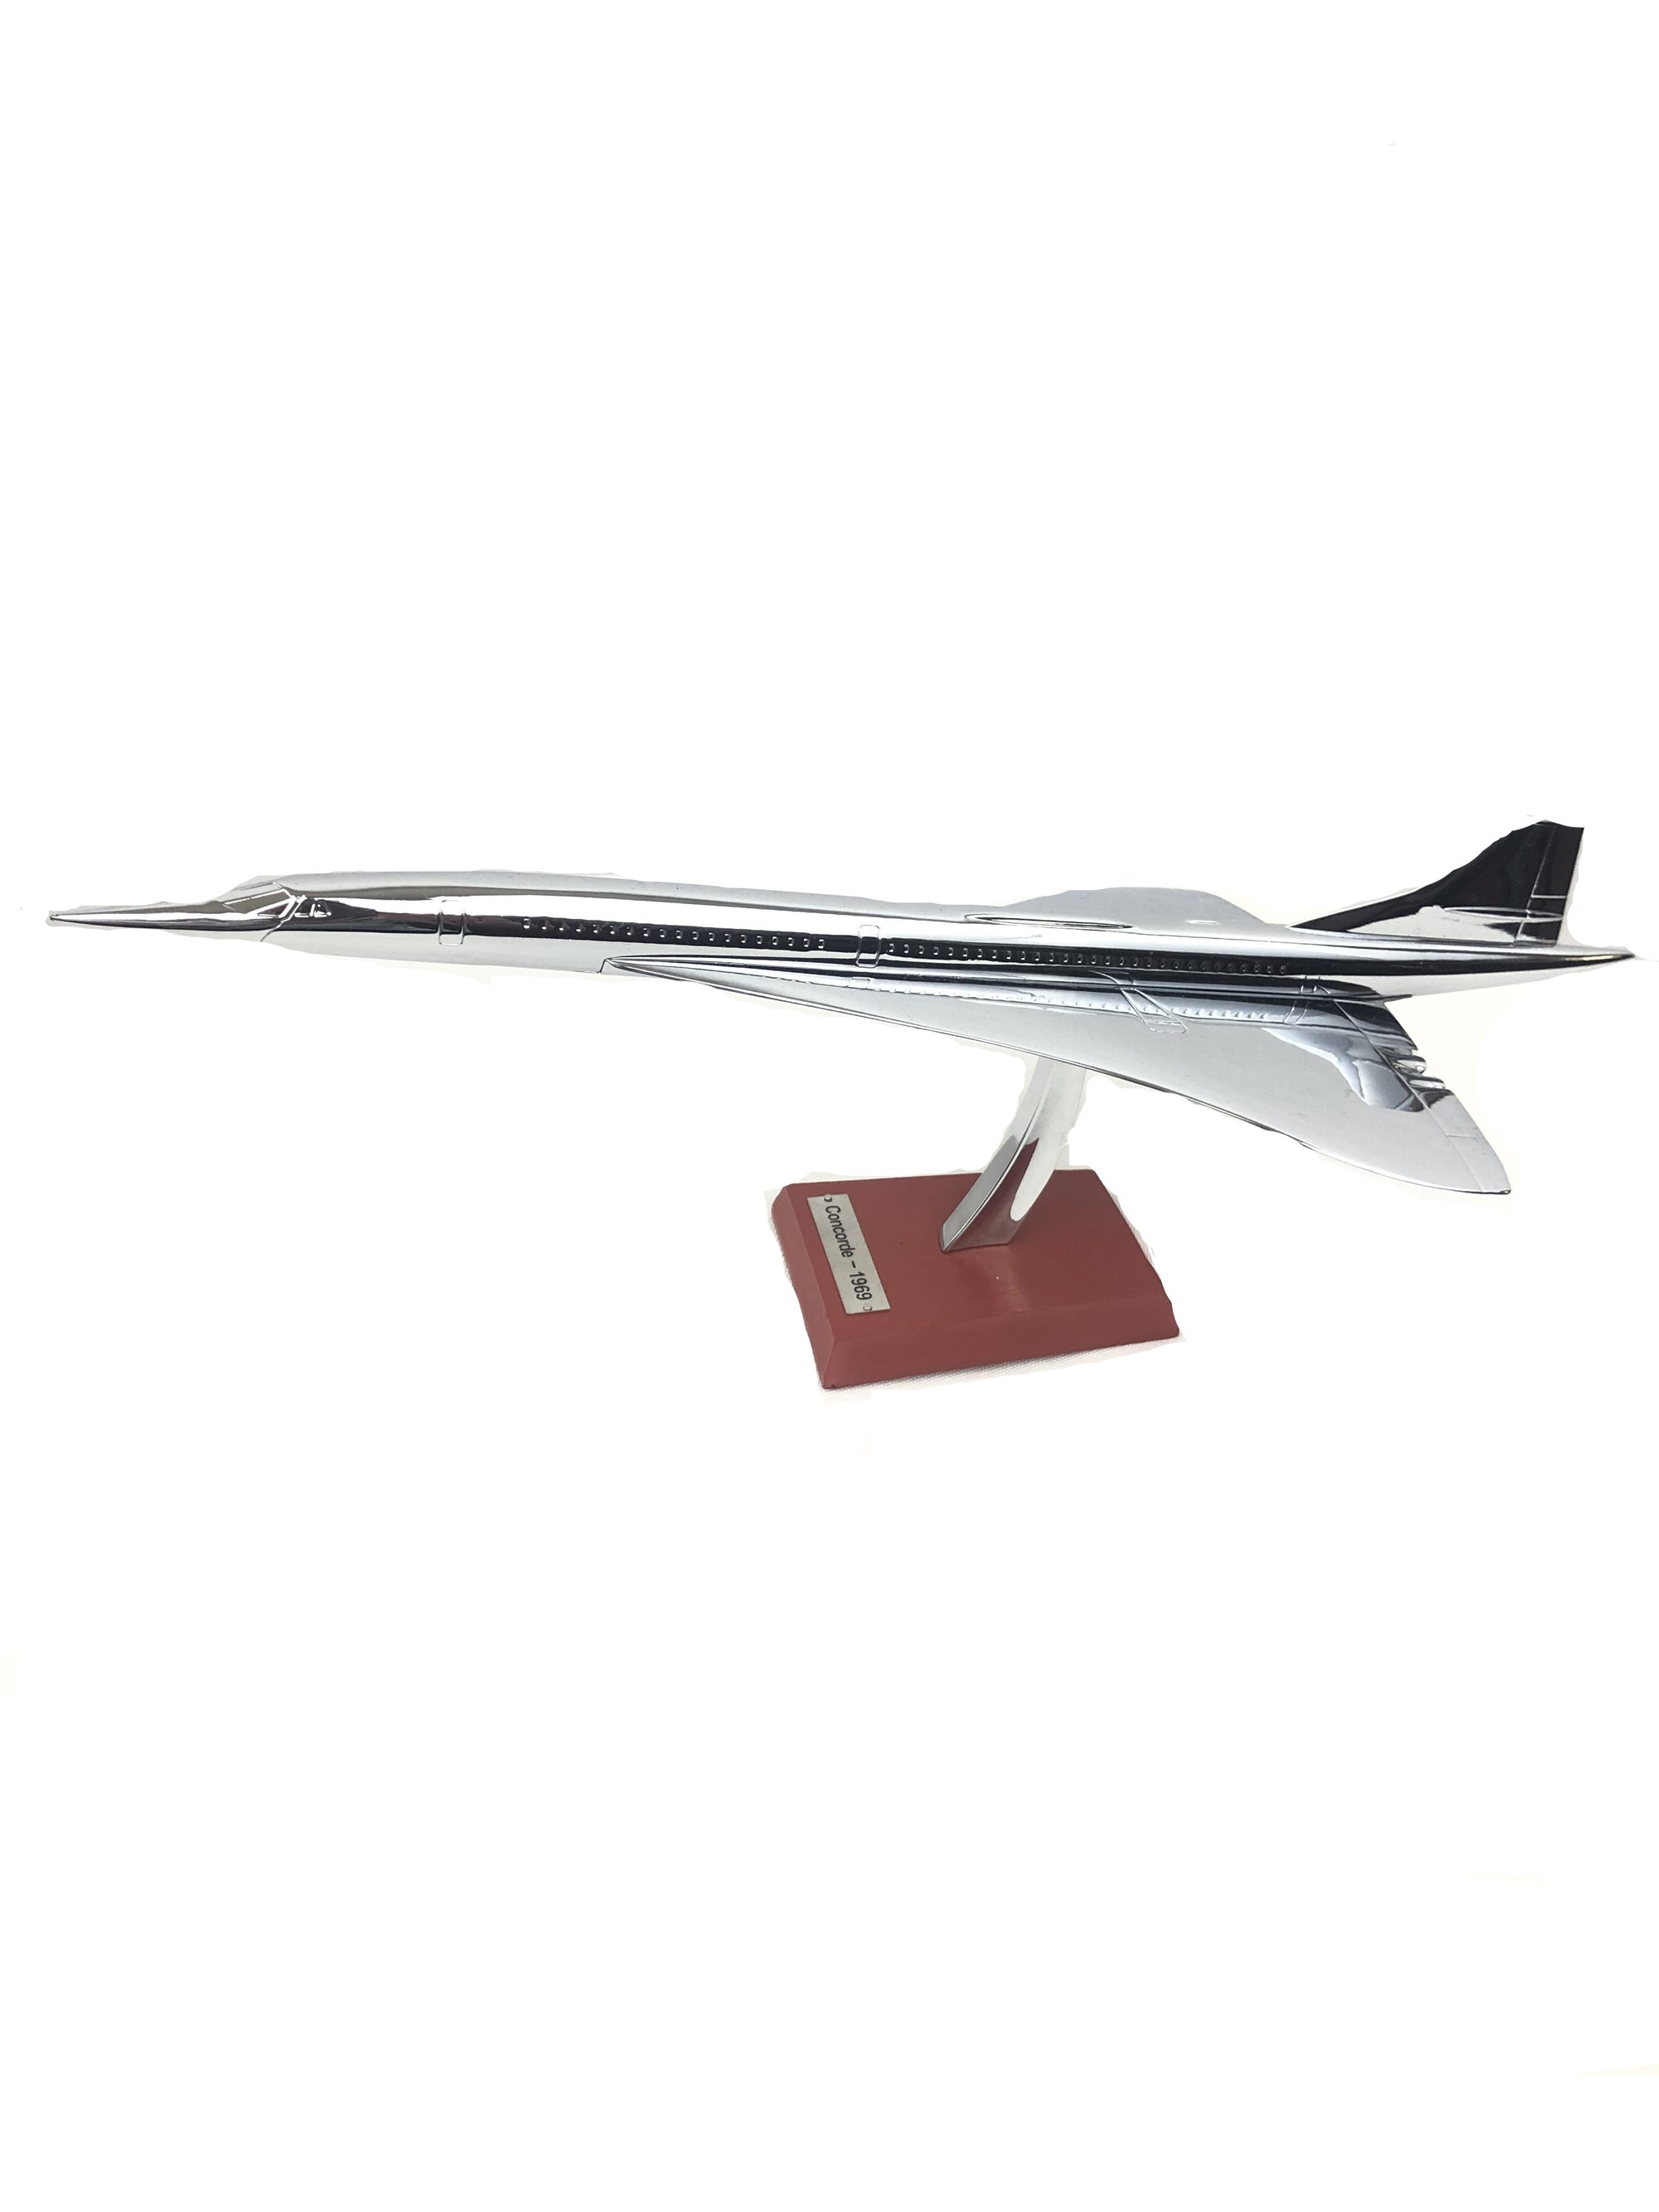 BUTTON DOWN CONCORD AEROPLANE SCALE MODEL